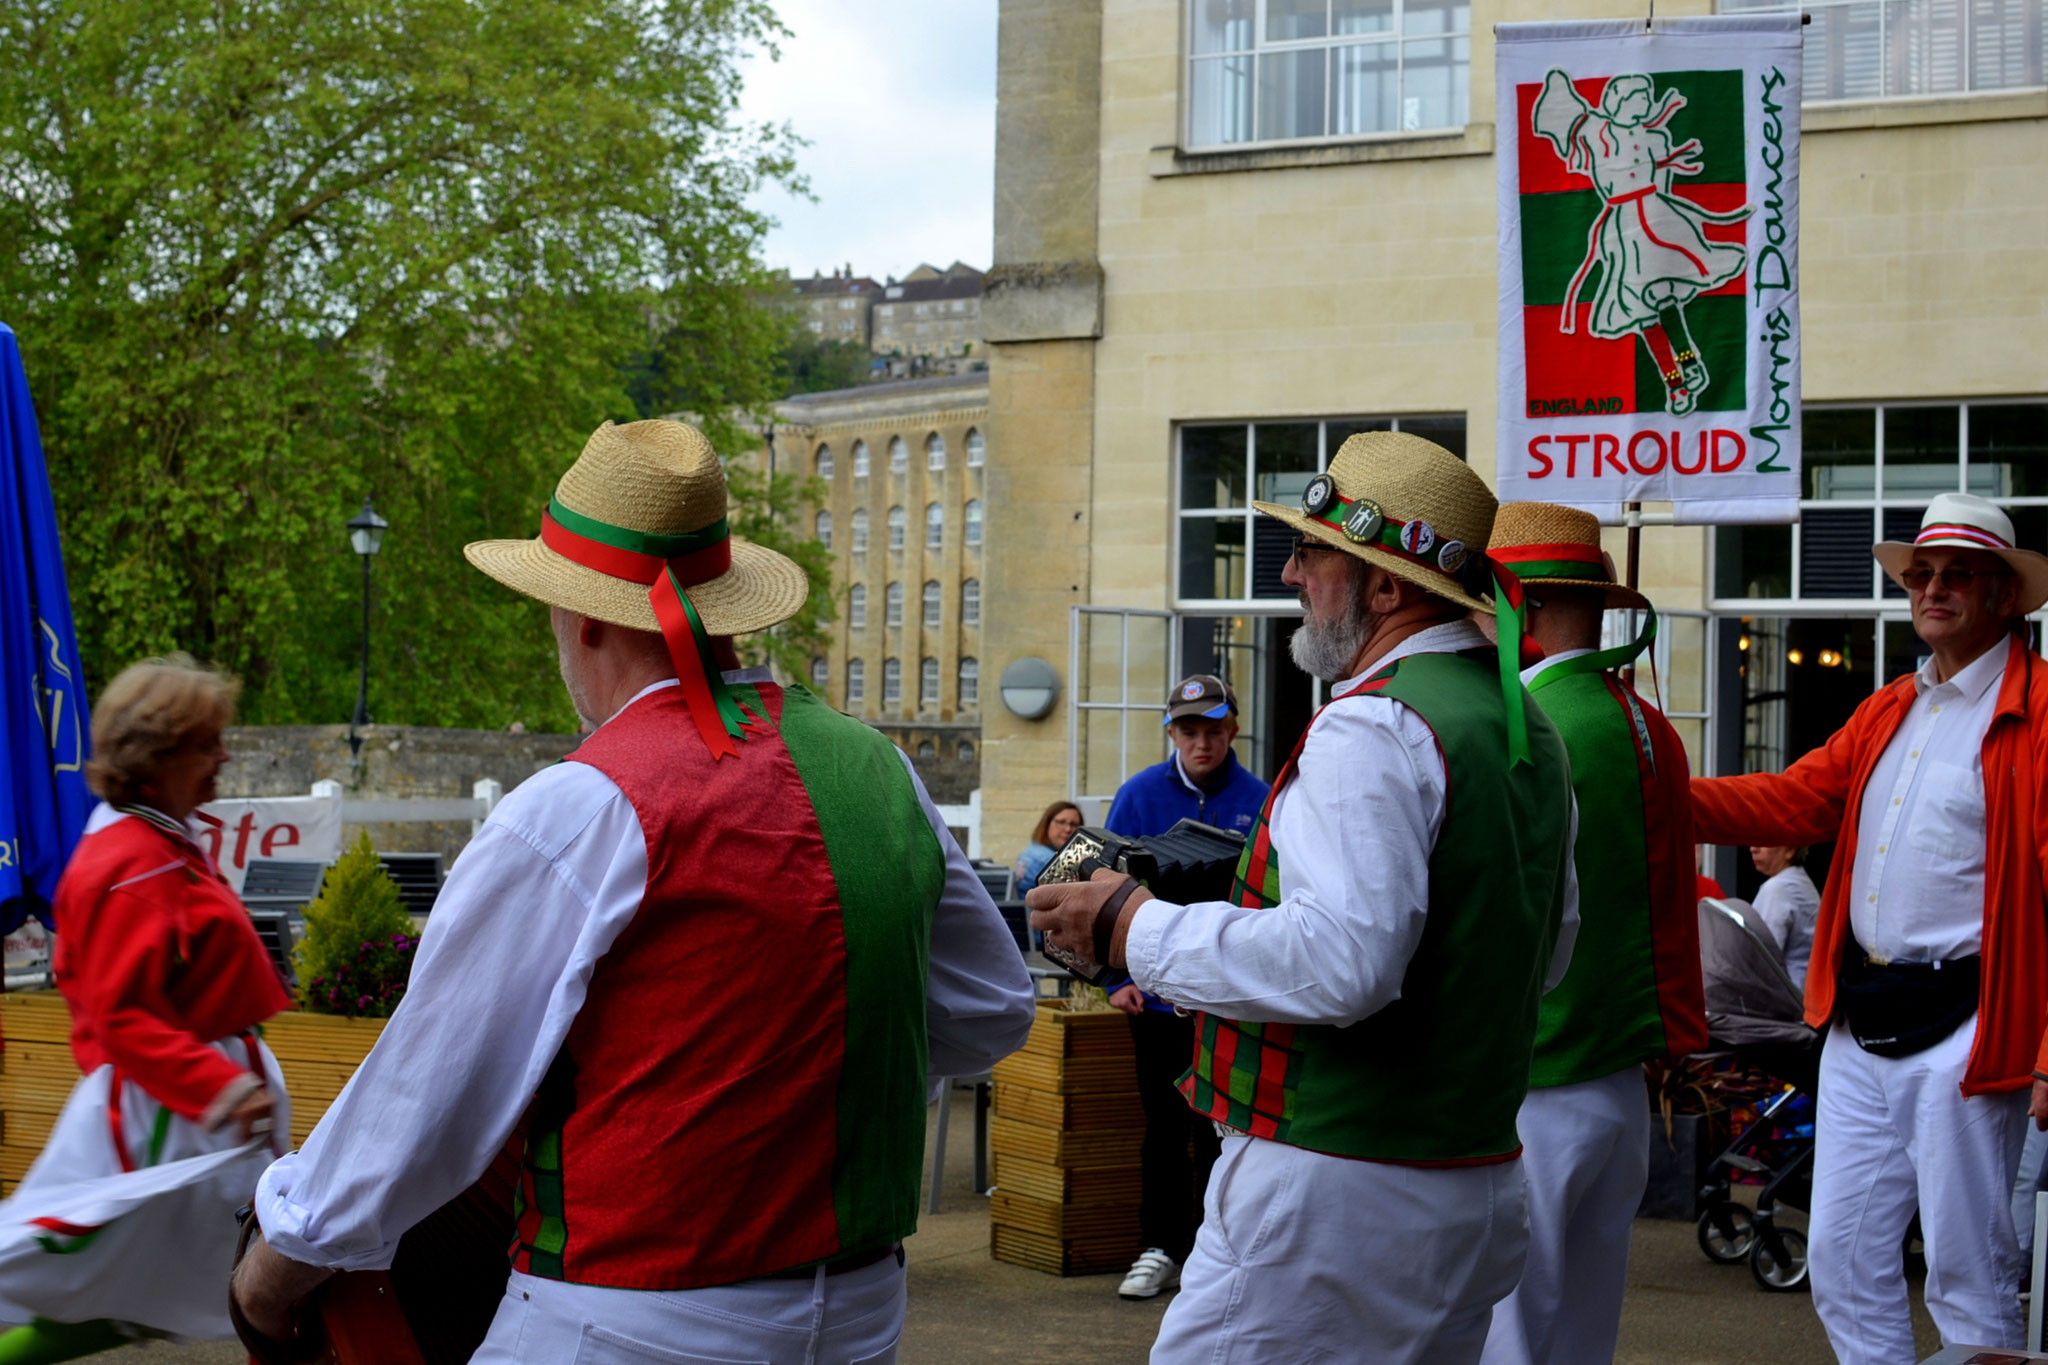 Bradford on Avon Day of Dance, 18th May 2019 (Photo: Jane Austen Dancers)